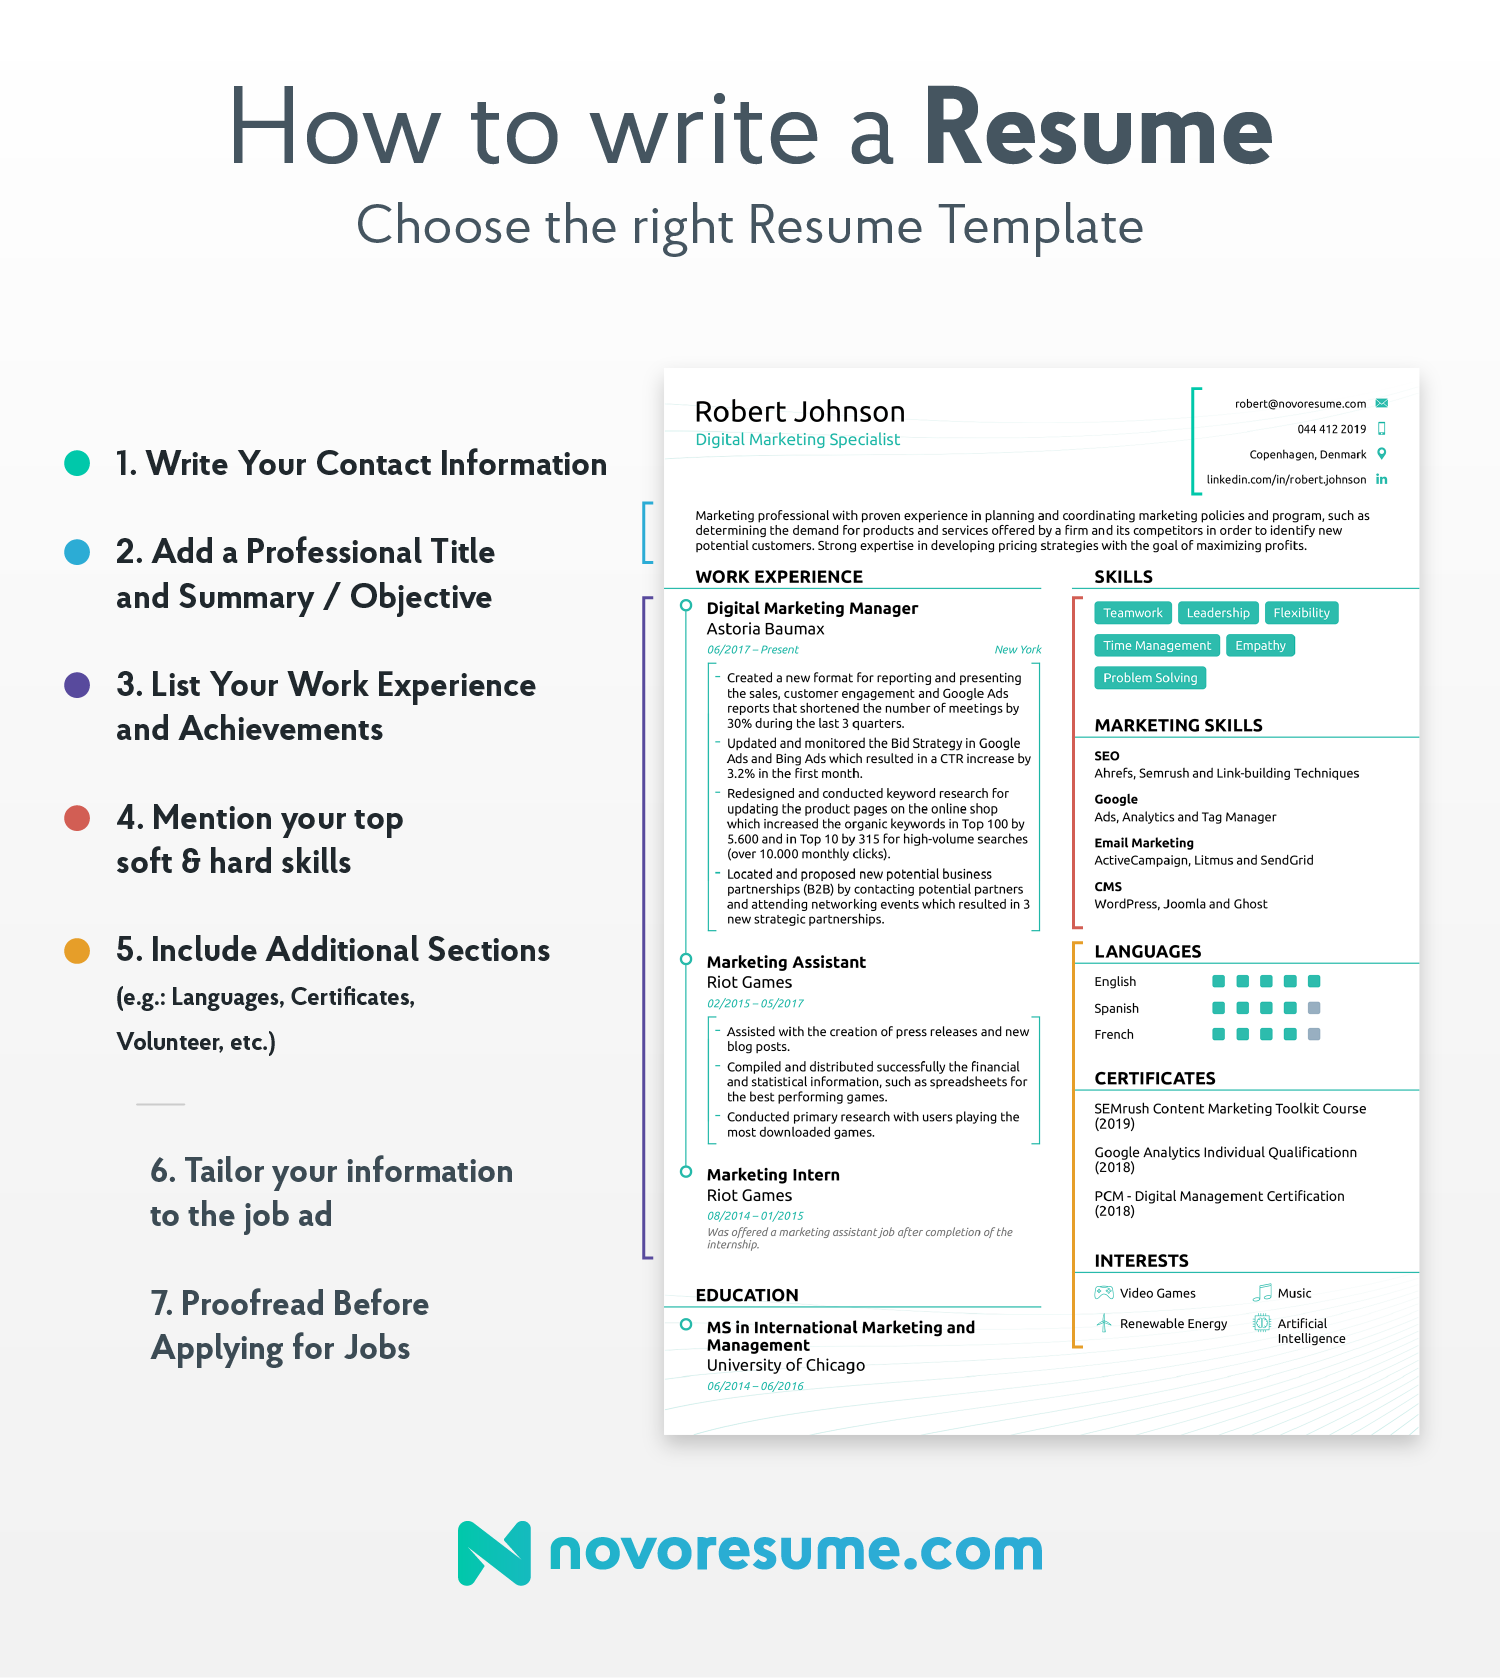 What To Have On A Resume.How To Write A Resume 2019 Beginner S Guide Novoresume